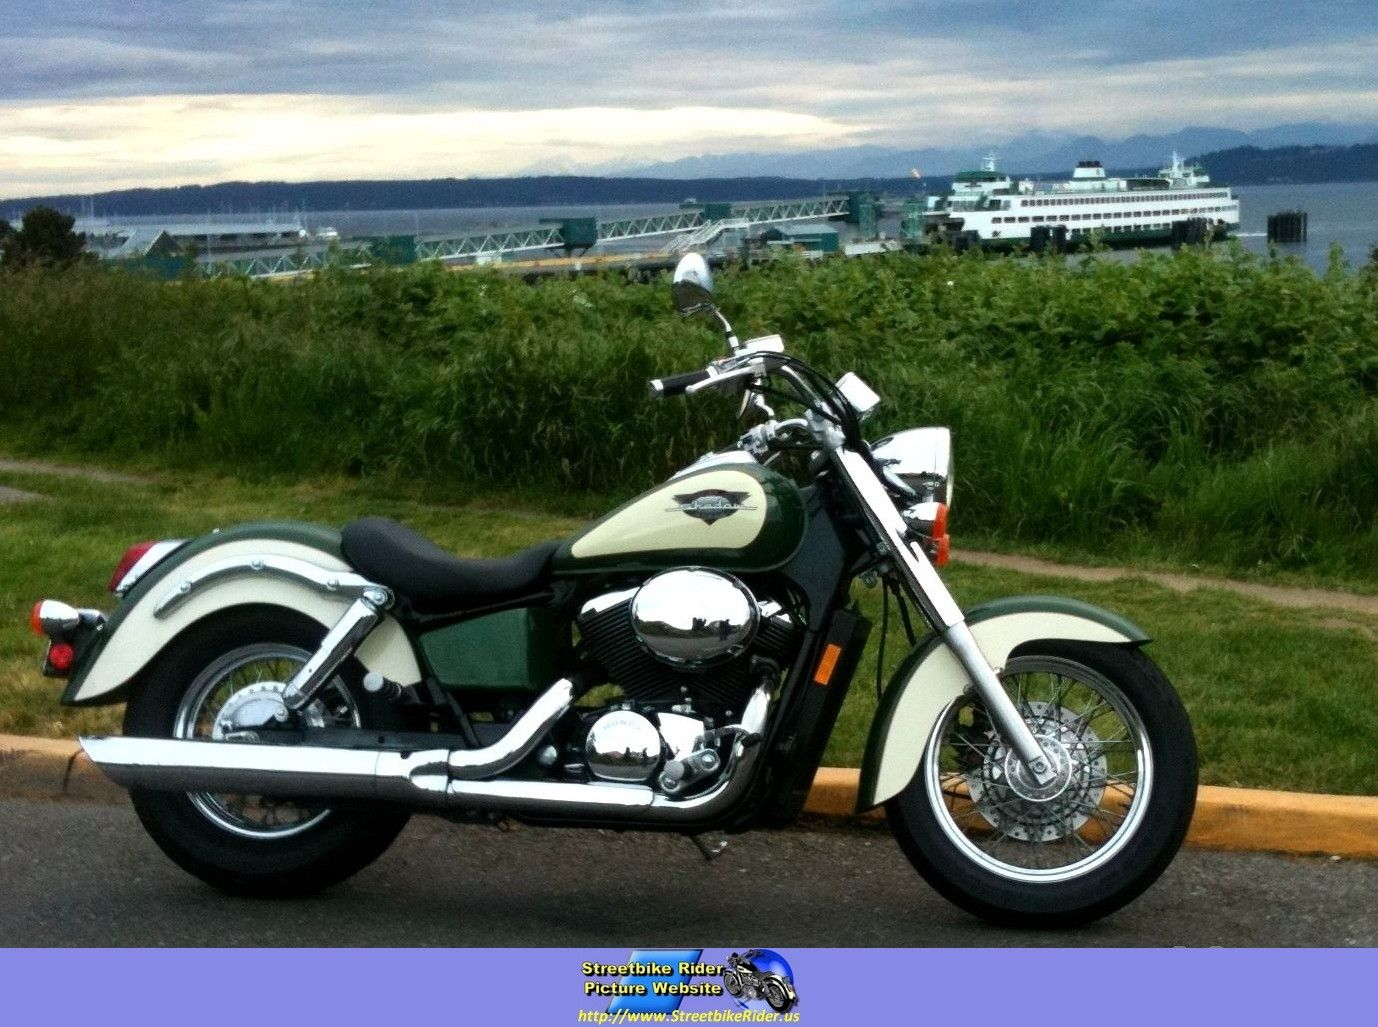 Awesome 1999 Honda Shadow 750 Ace Green. Another View Of My Favorite Bike.